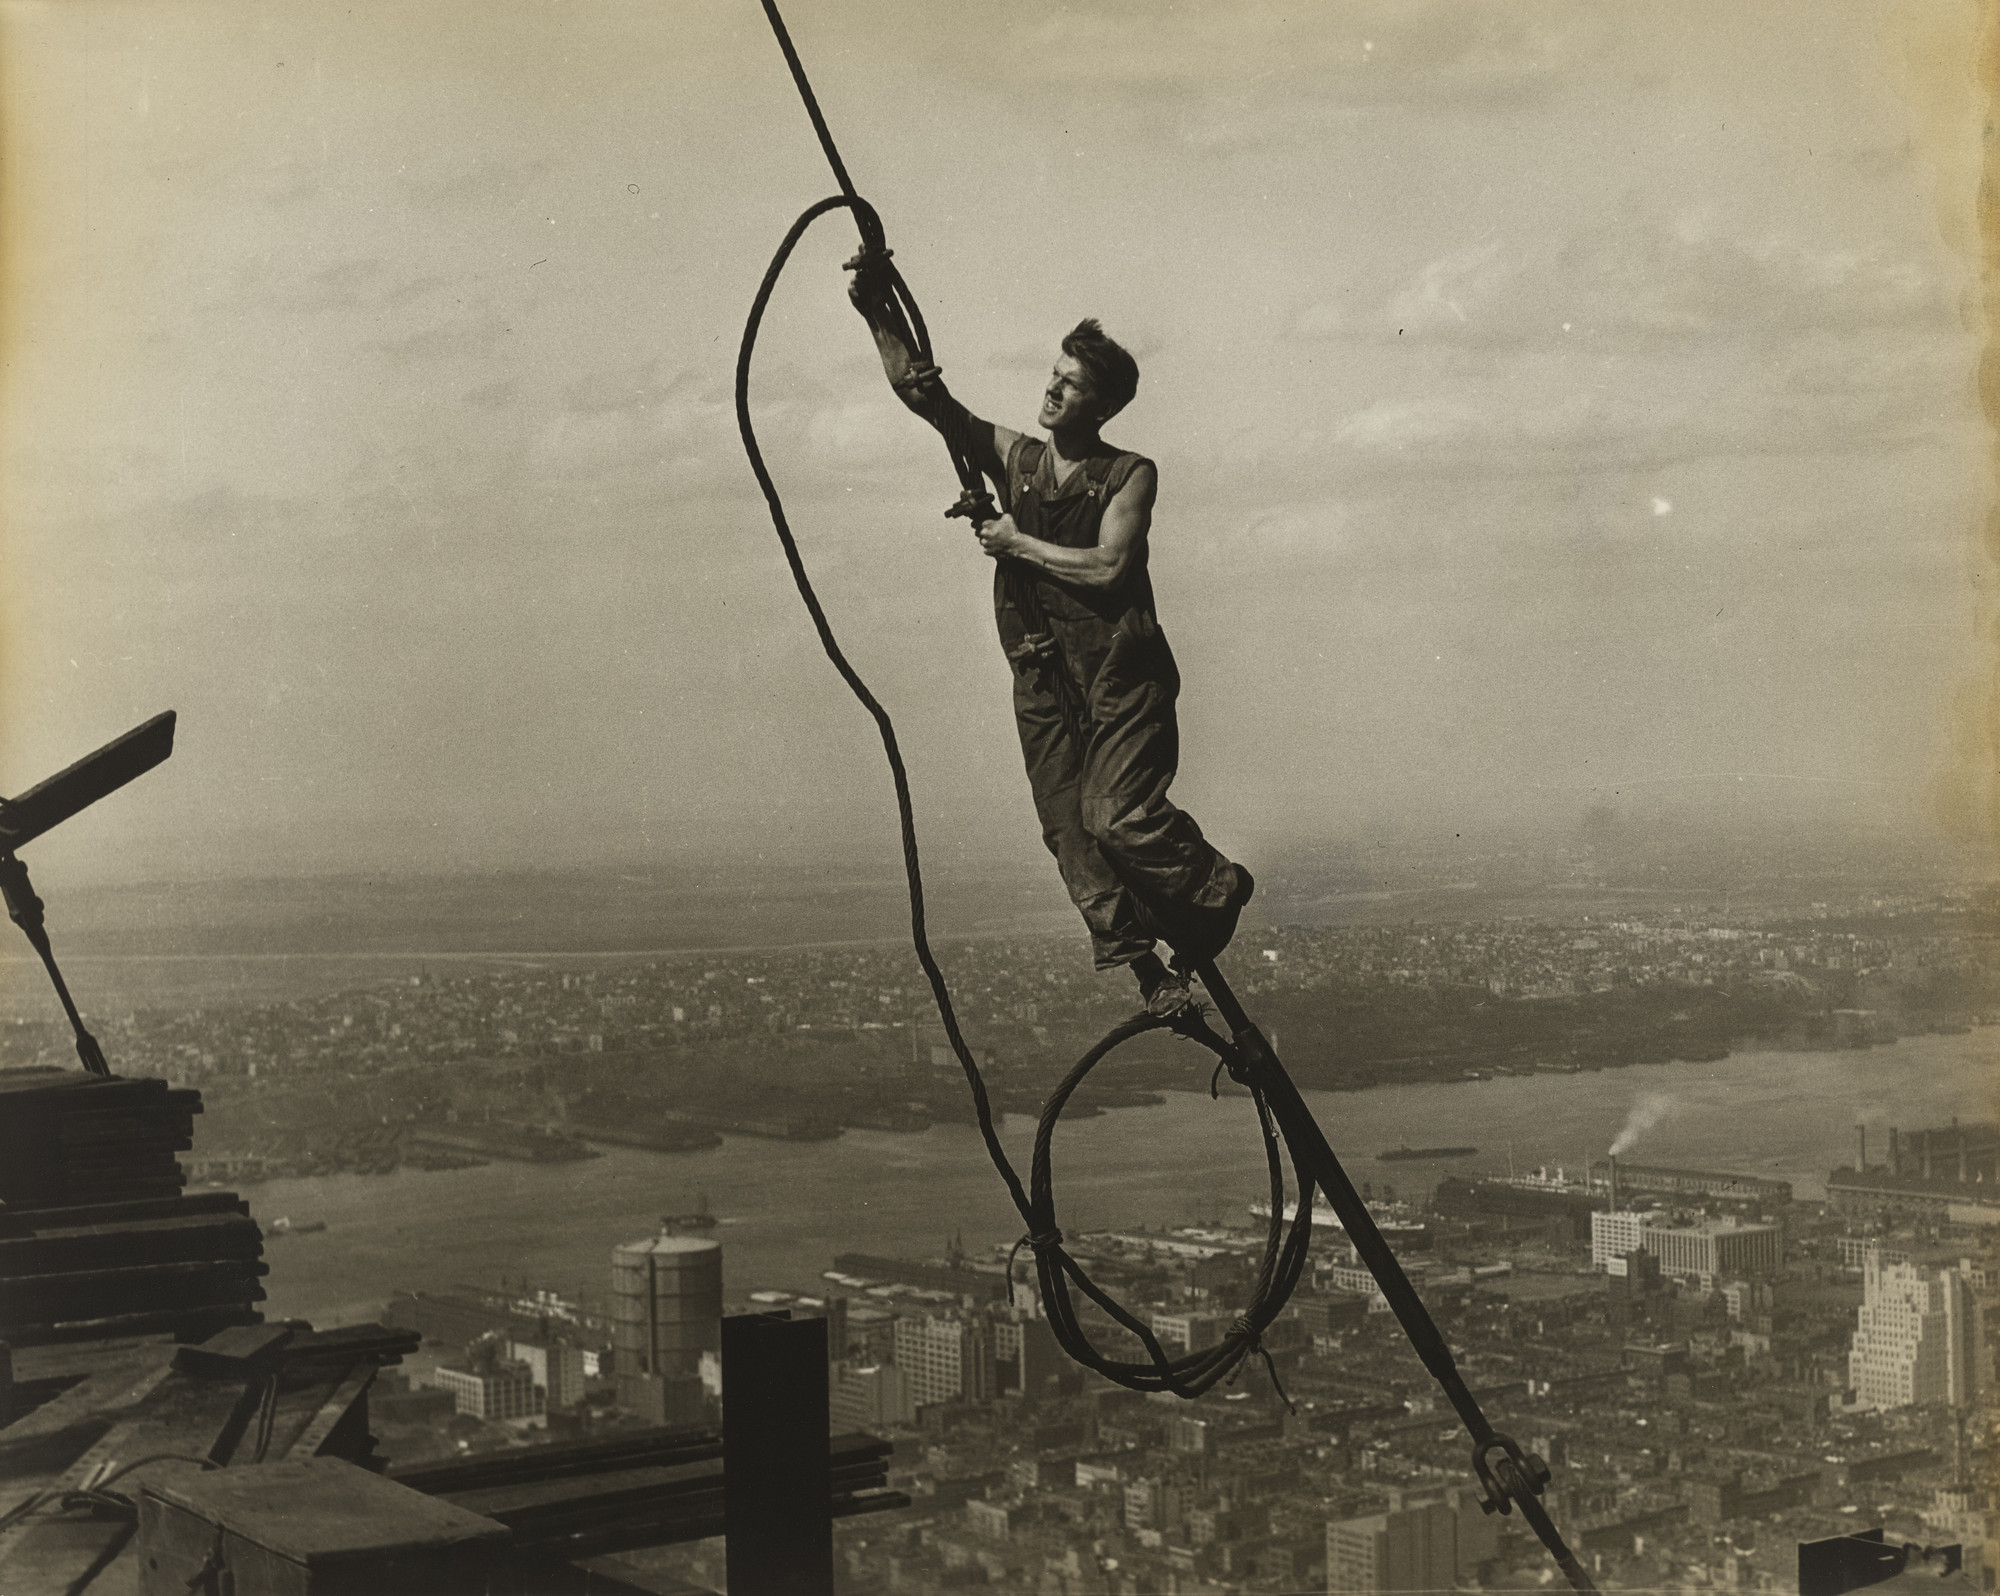 Lewis W. Hine. Workers on the Empire State Building. c. 1930